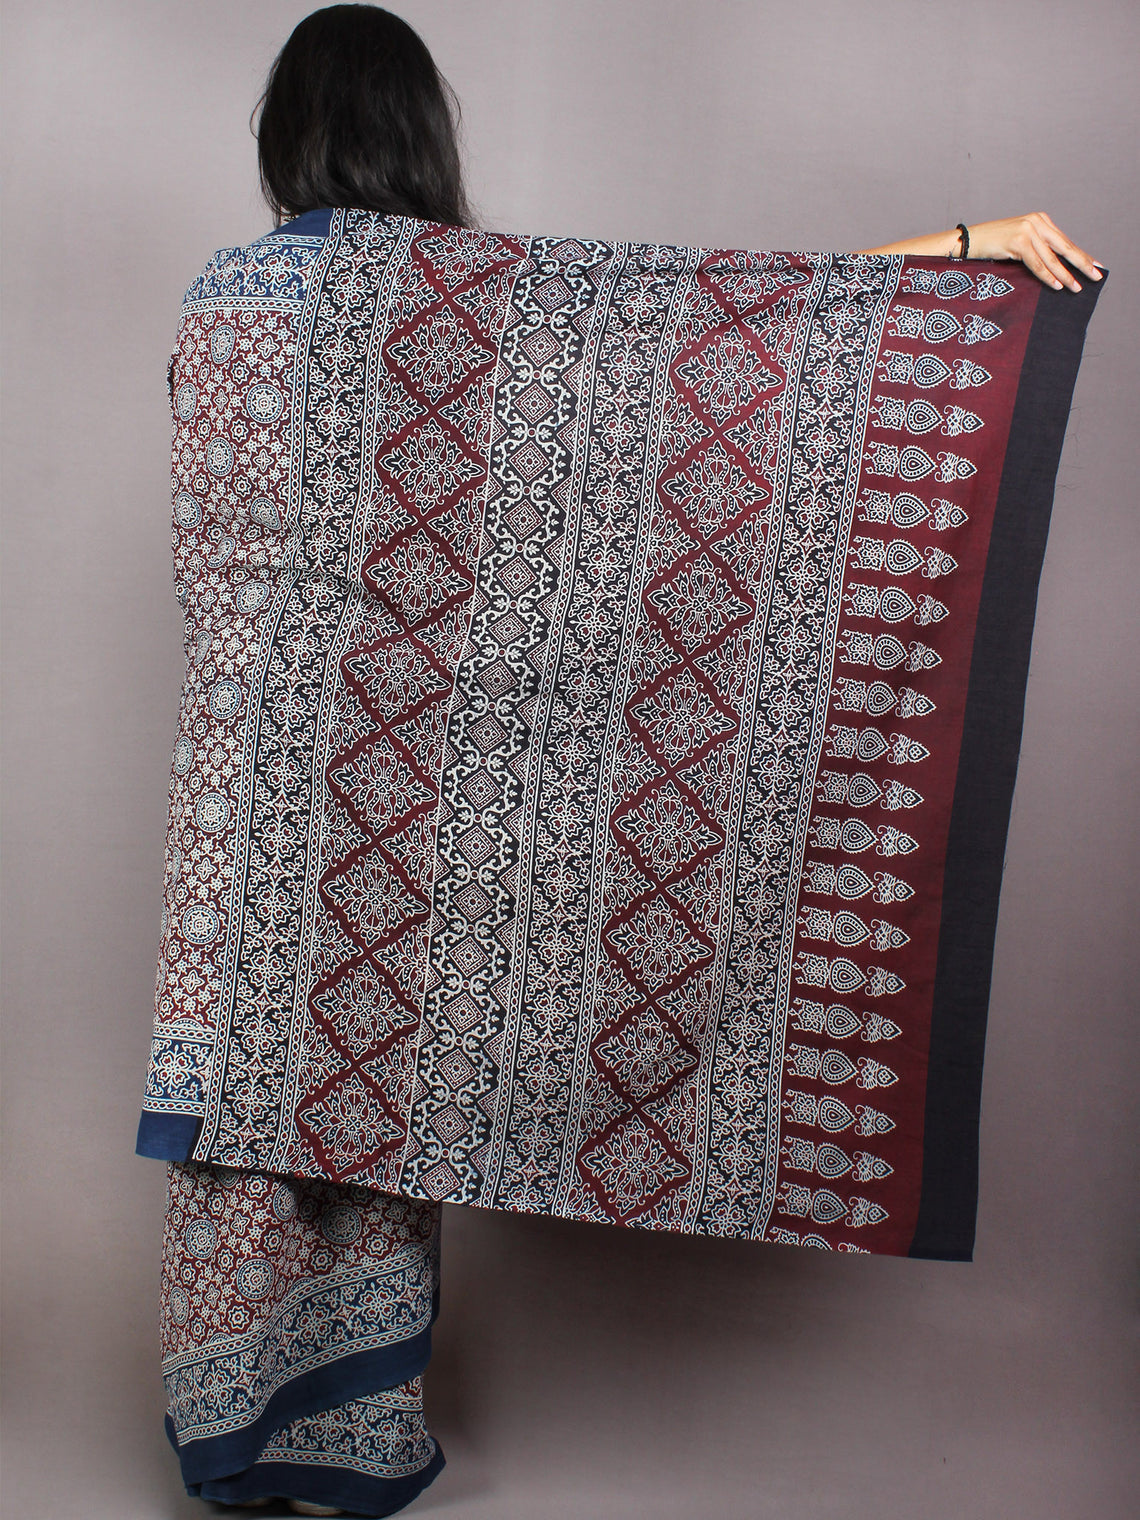 Indigo Maroon Black Beige Mughal Nakashi Ajrakh Hand Block Printed in Natural Vegetable Colors Cotton Mul Saree With Black Blouse - S03170592